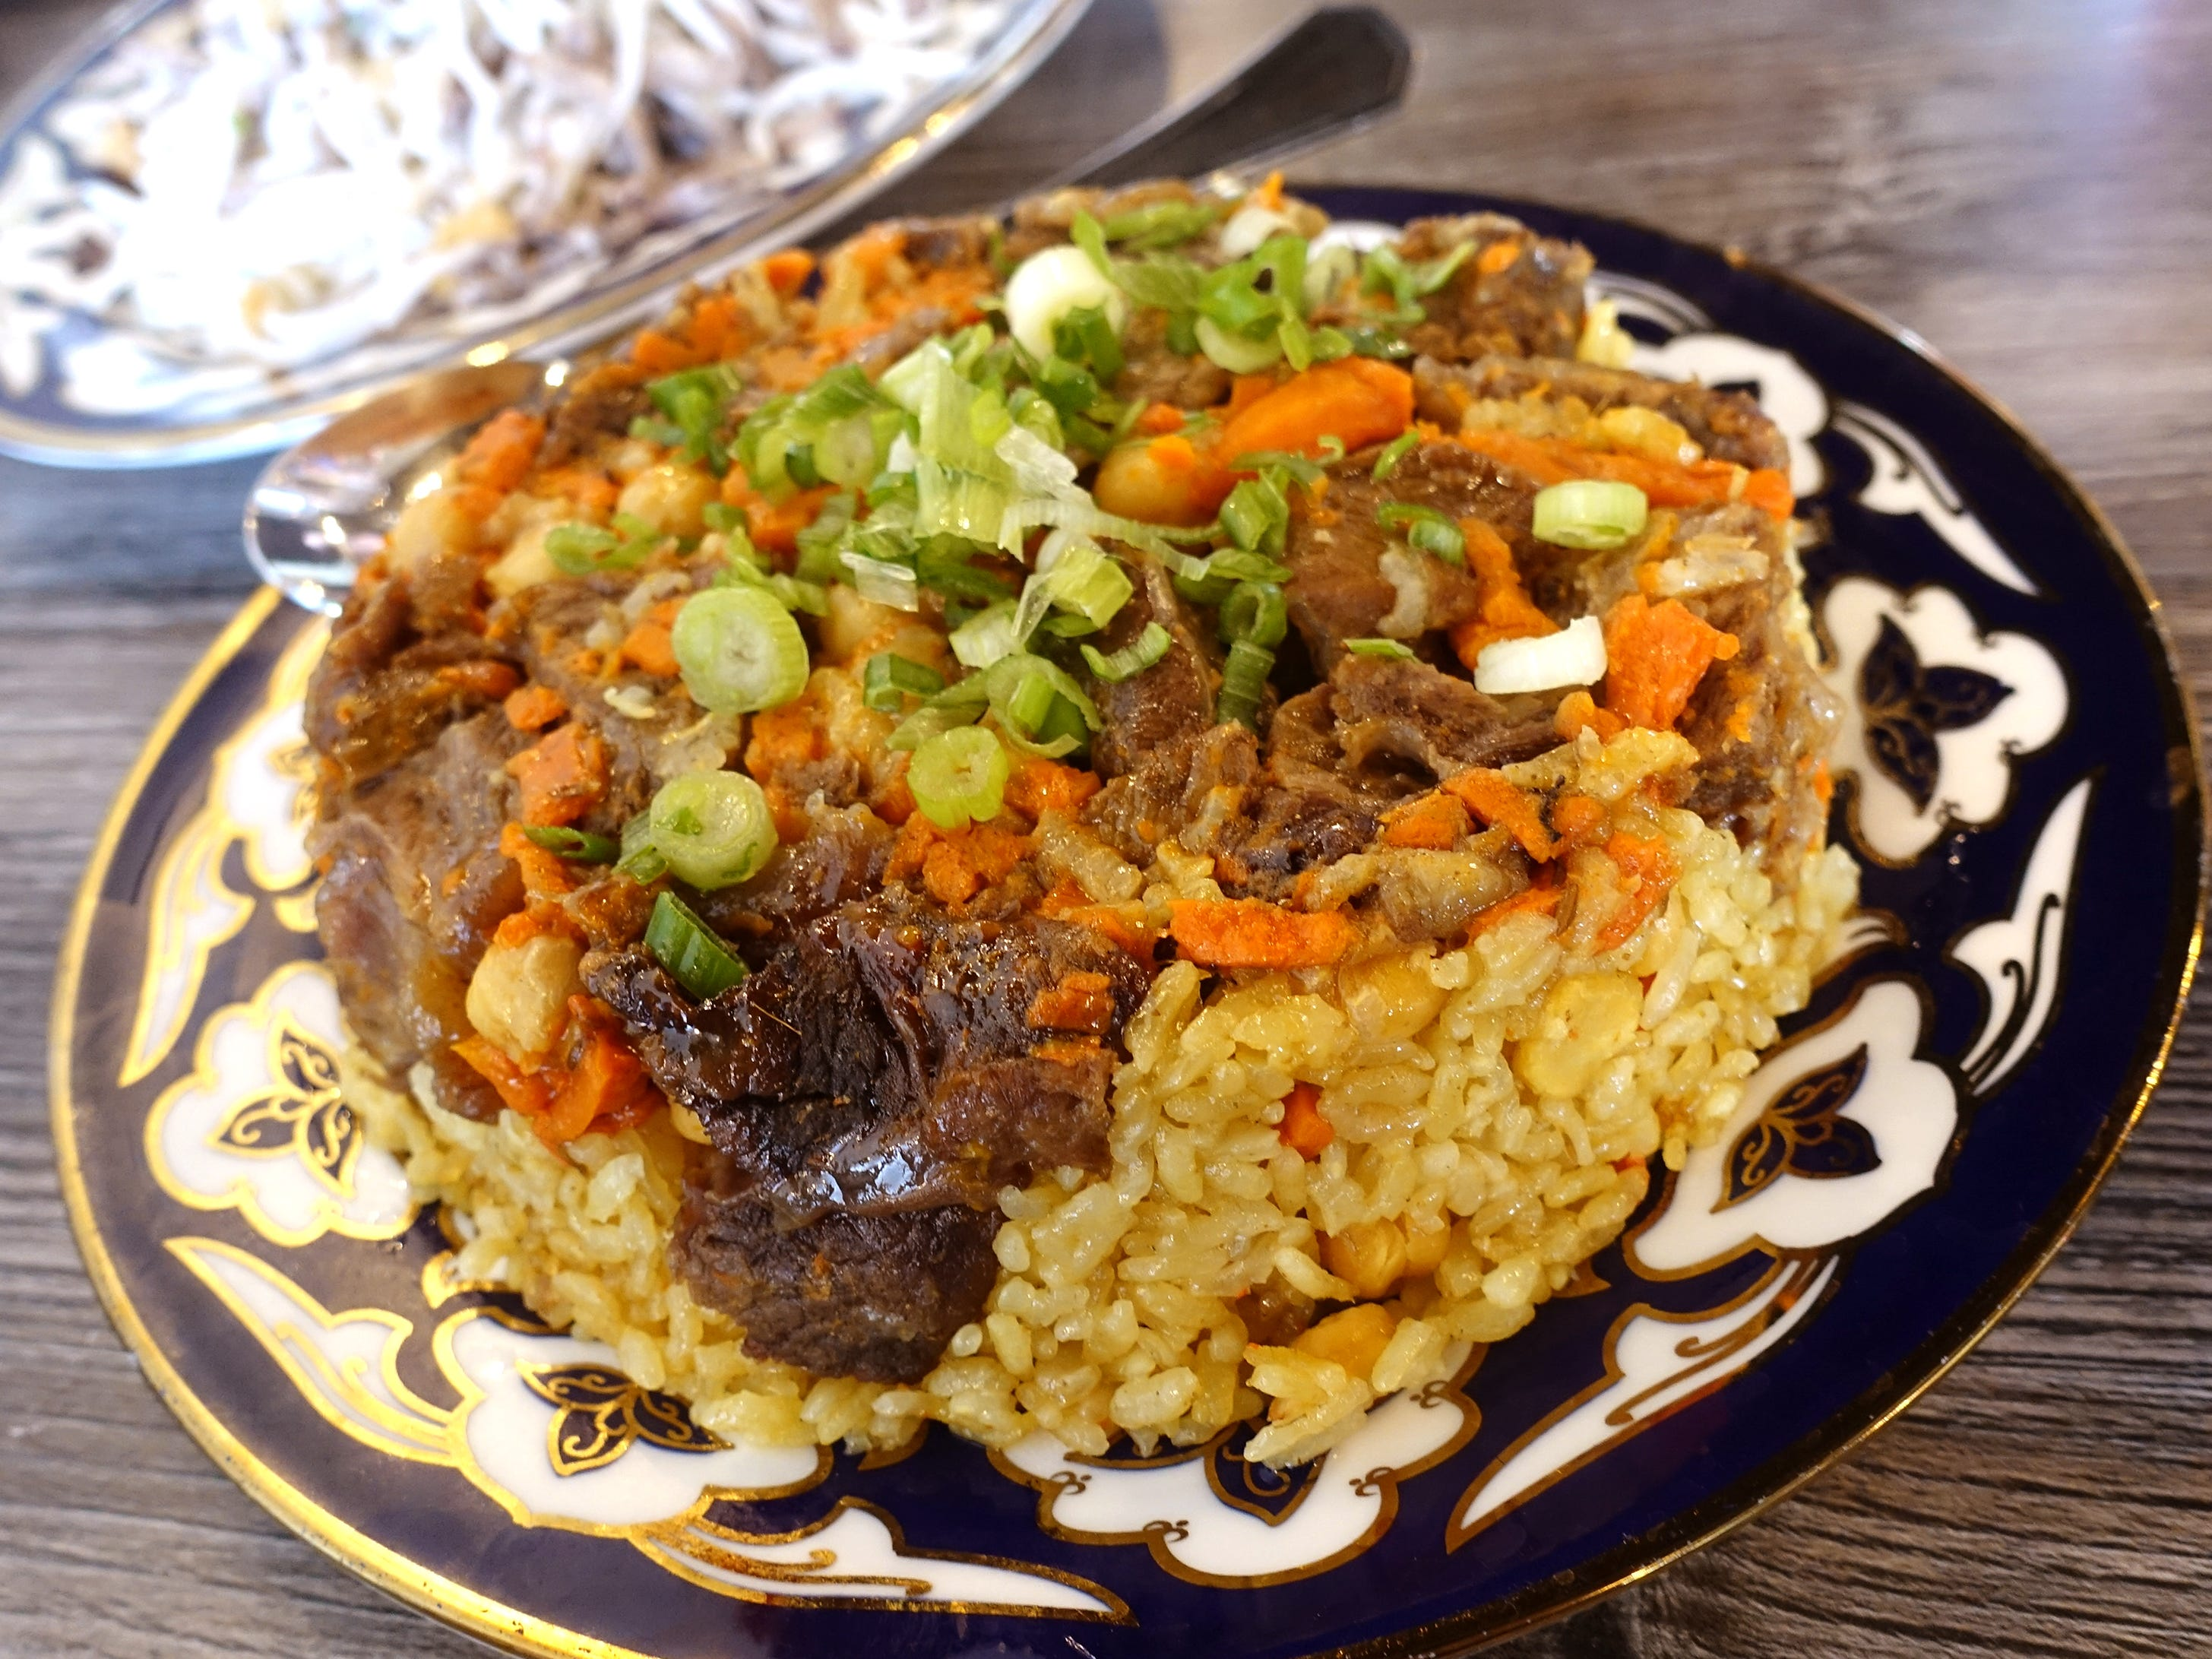 Uzbek plov with beef, rice, carrots and chickpeas at Cafe Chenar in Phoenix.